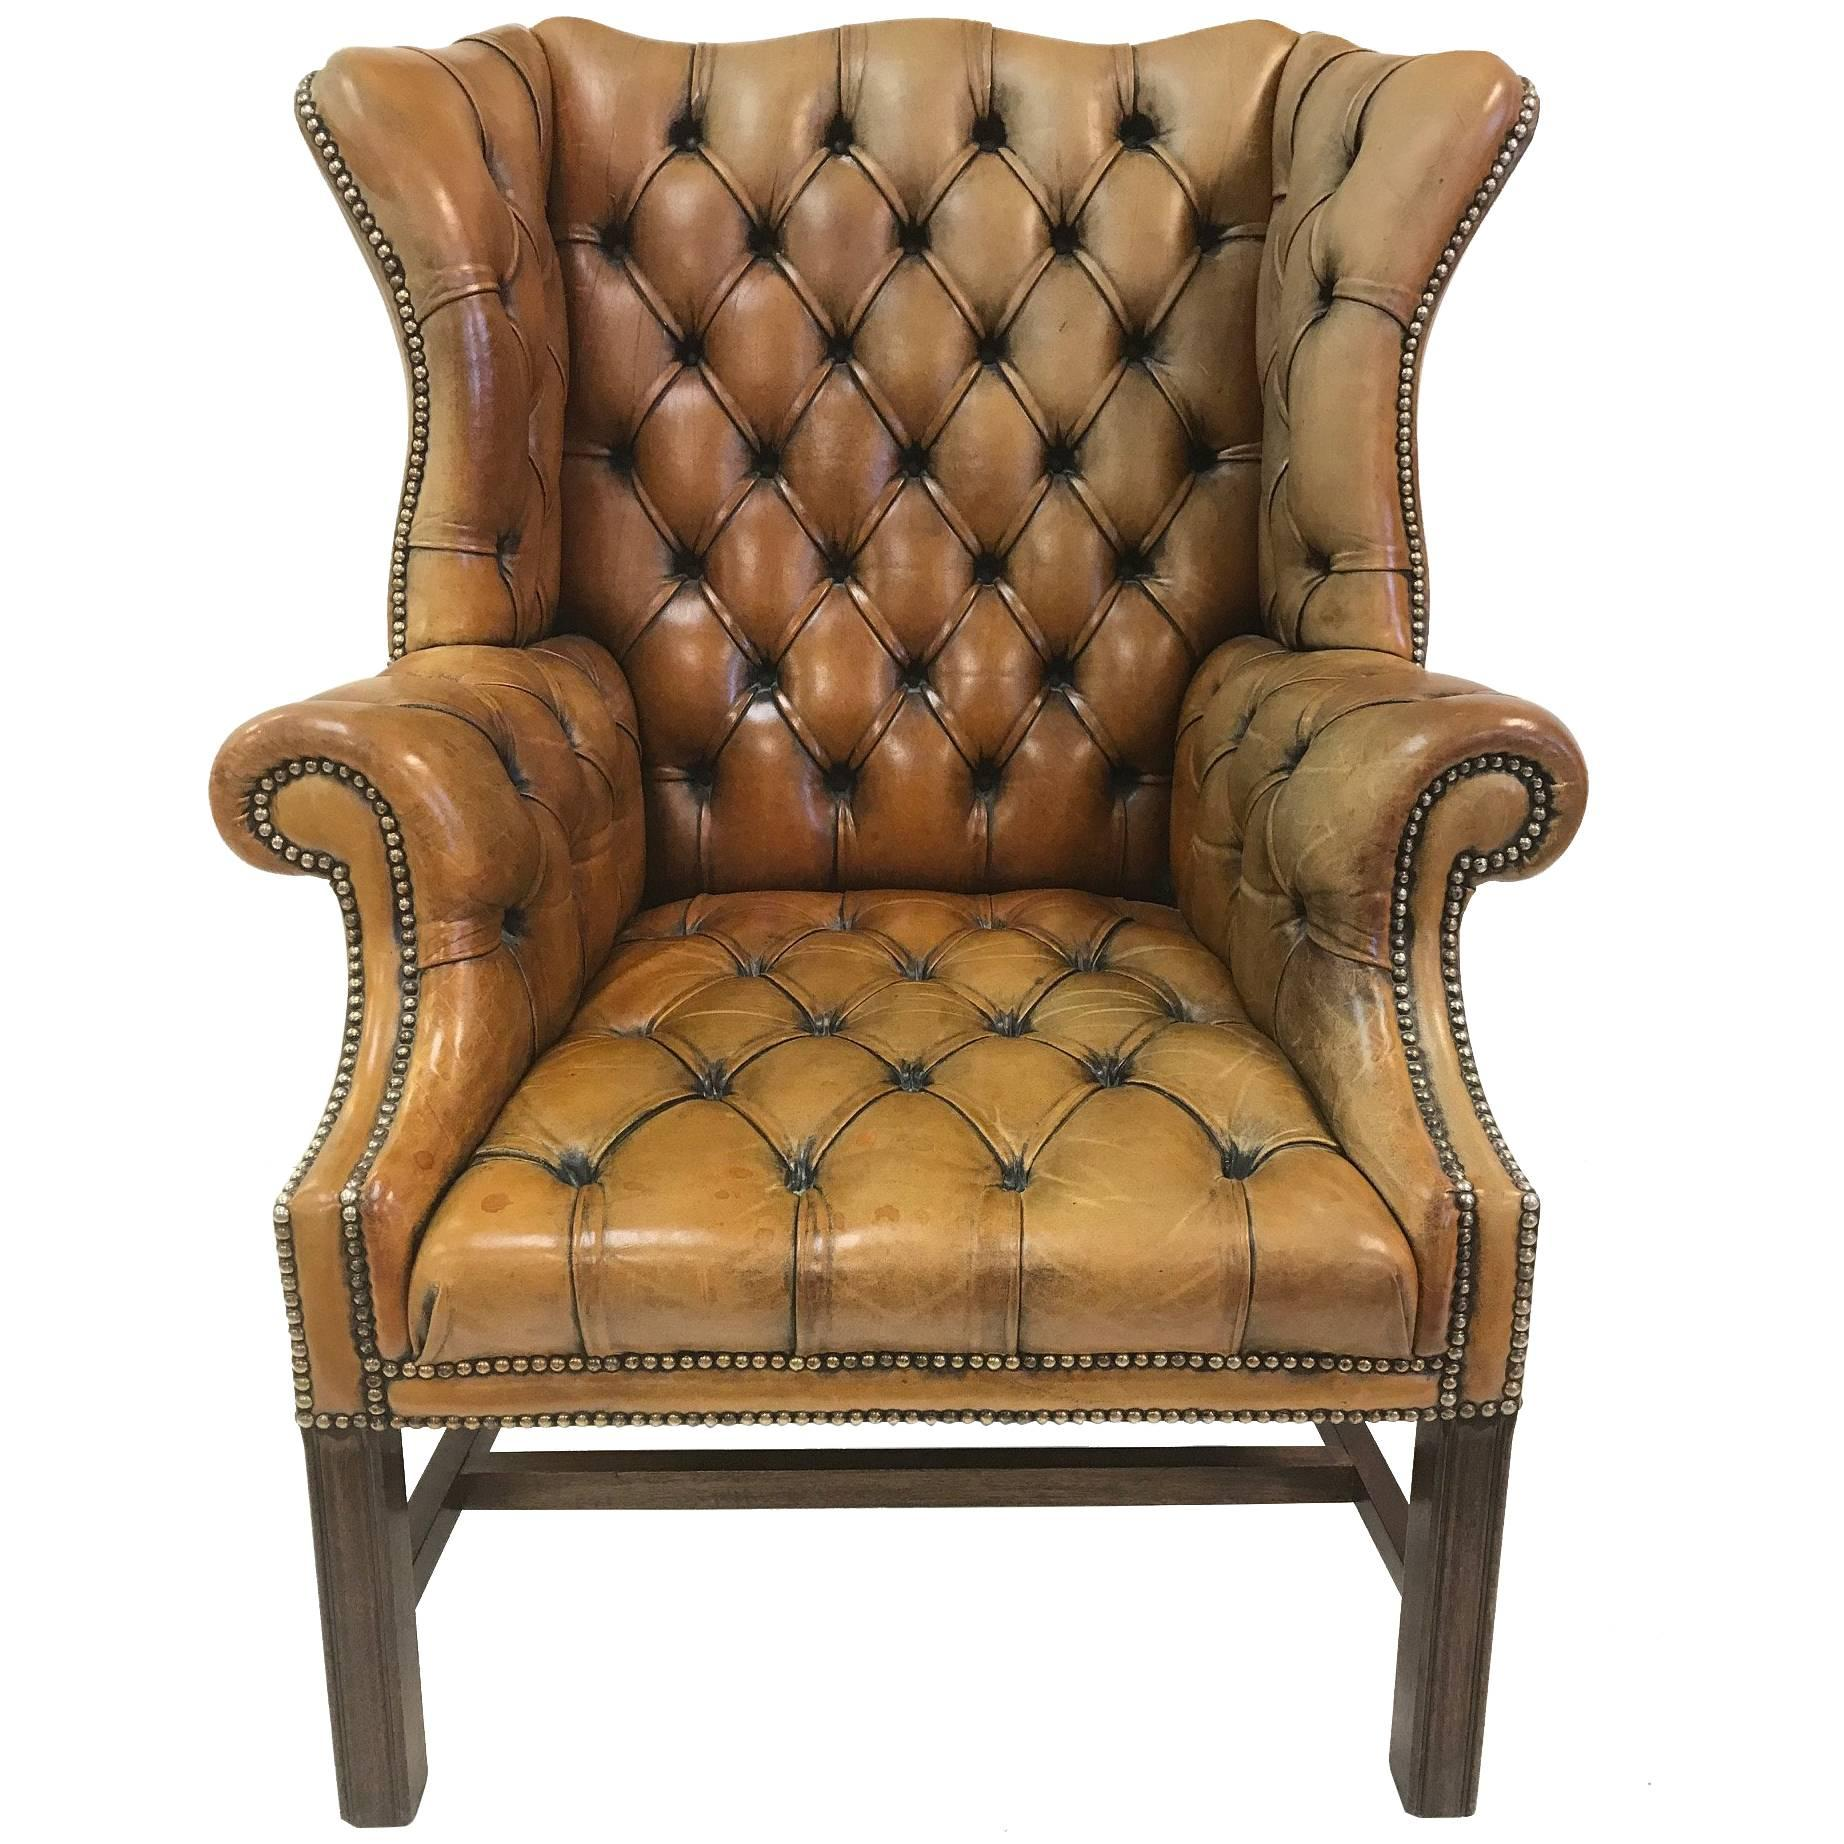 Vintage English Leather Tufted Wingback Library Chair For Sale